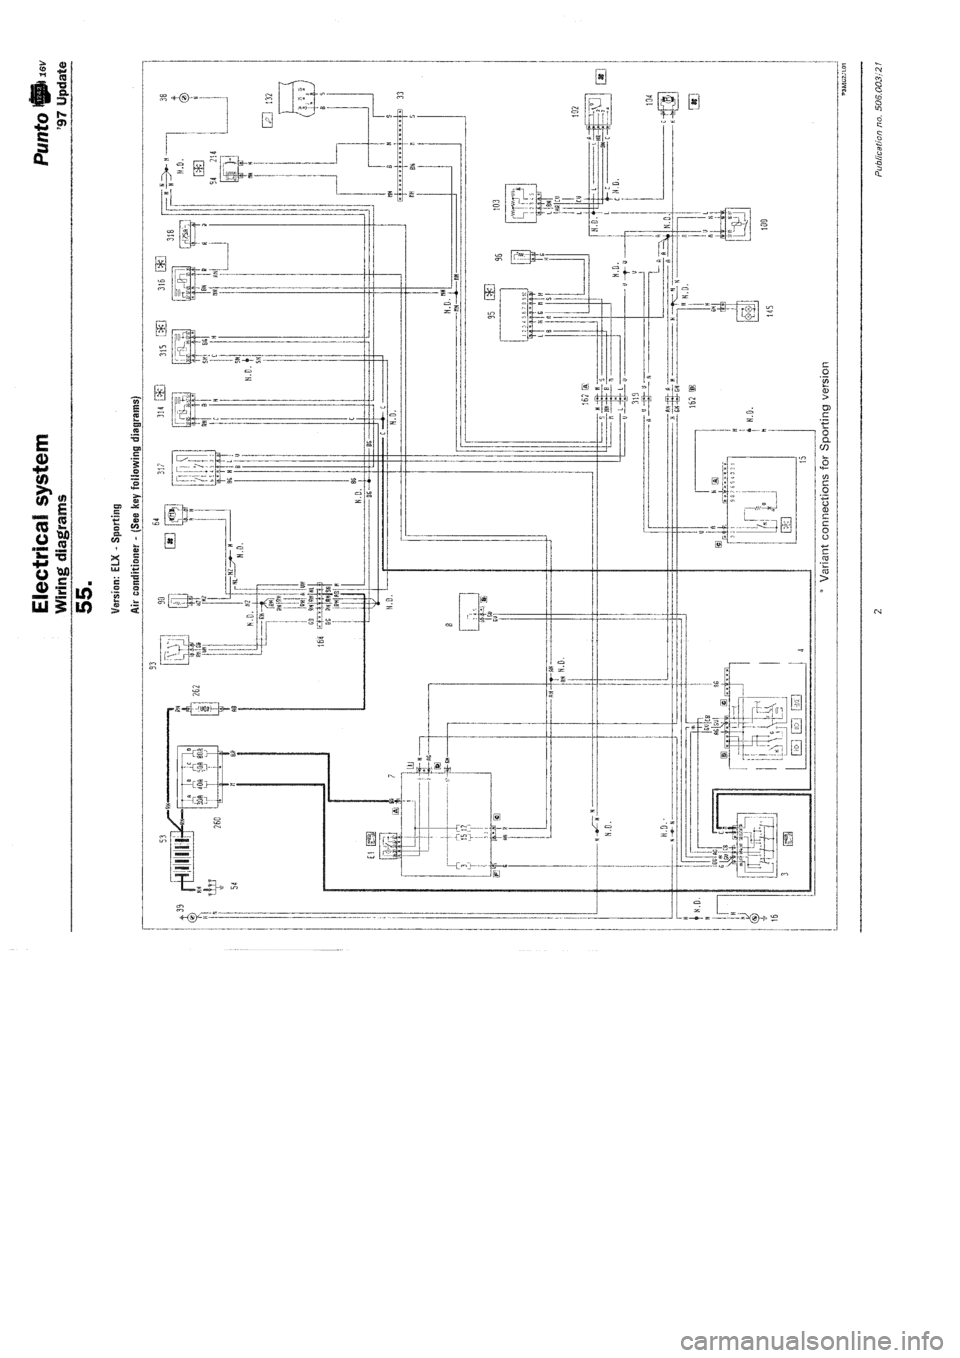 w960_4692-2 Xdvd Wiring Diagram on